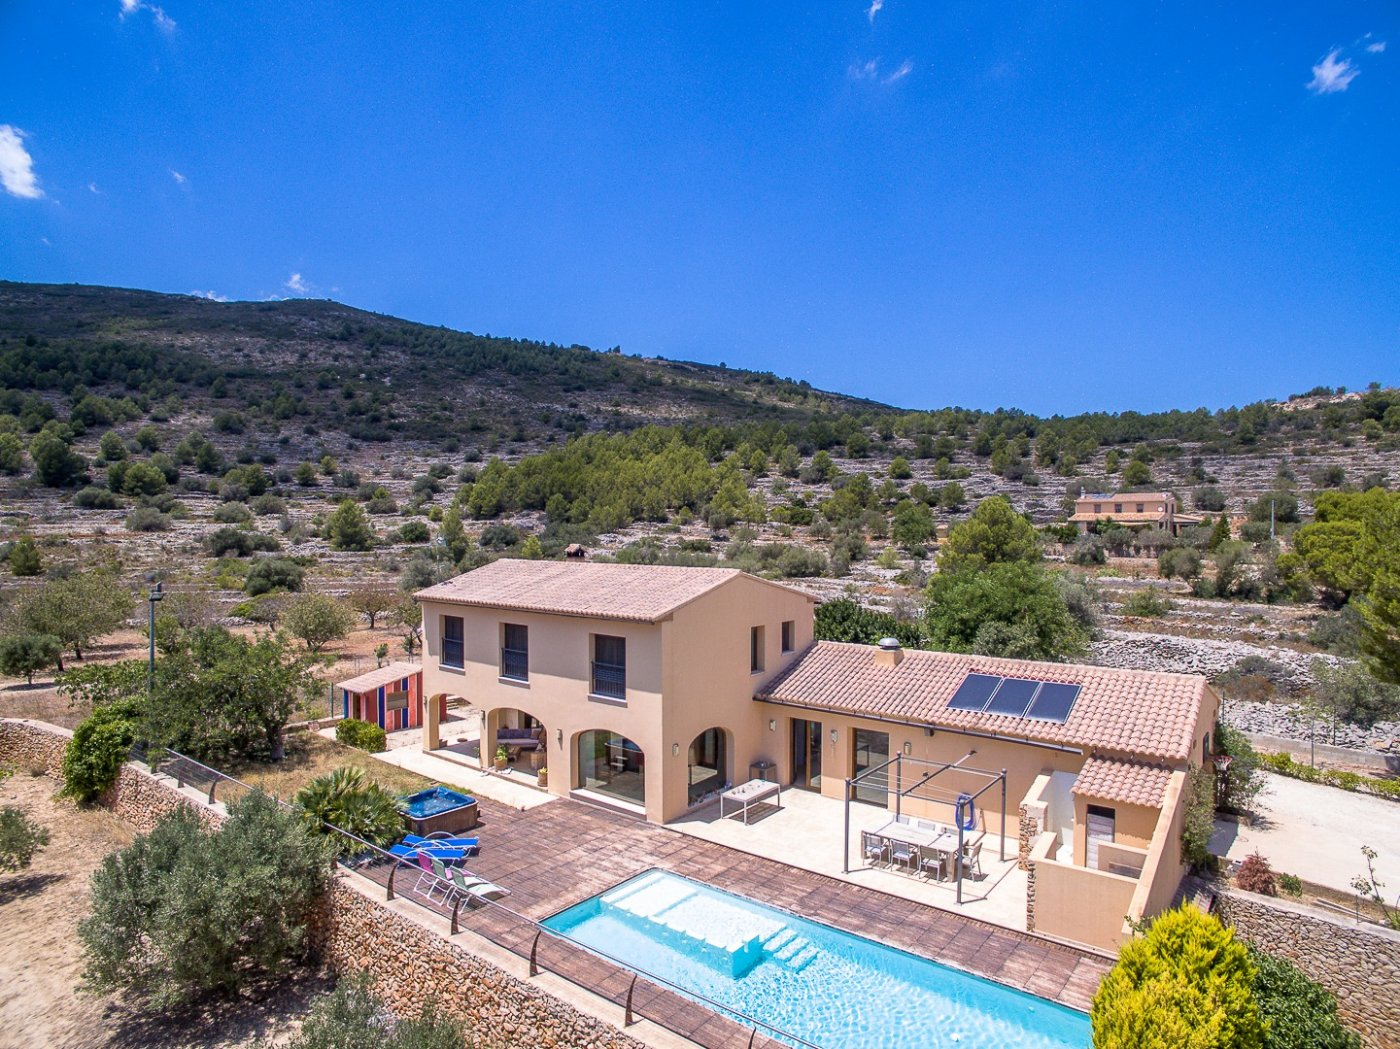 Country House - Ready To Move And Live - Benimallunt - Benissa